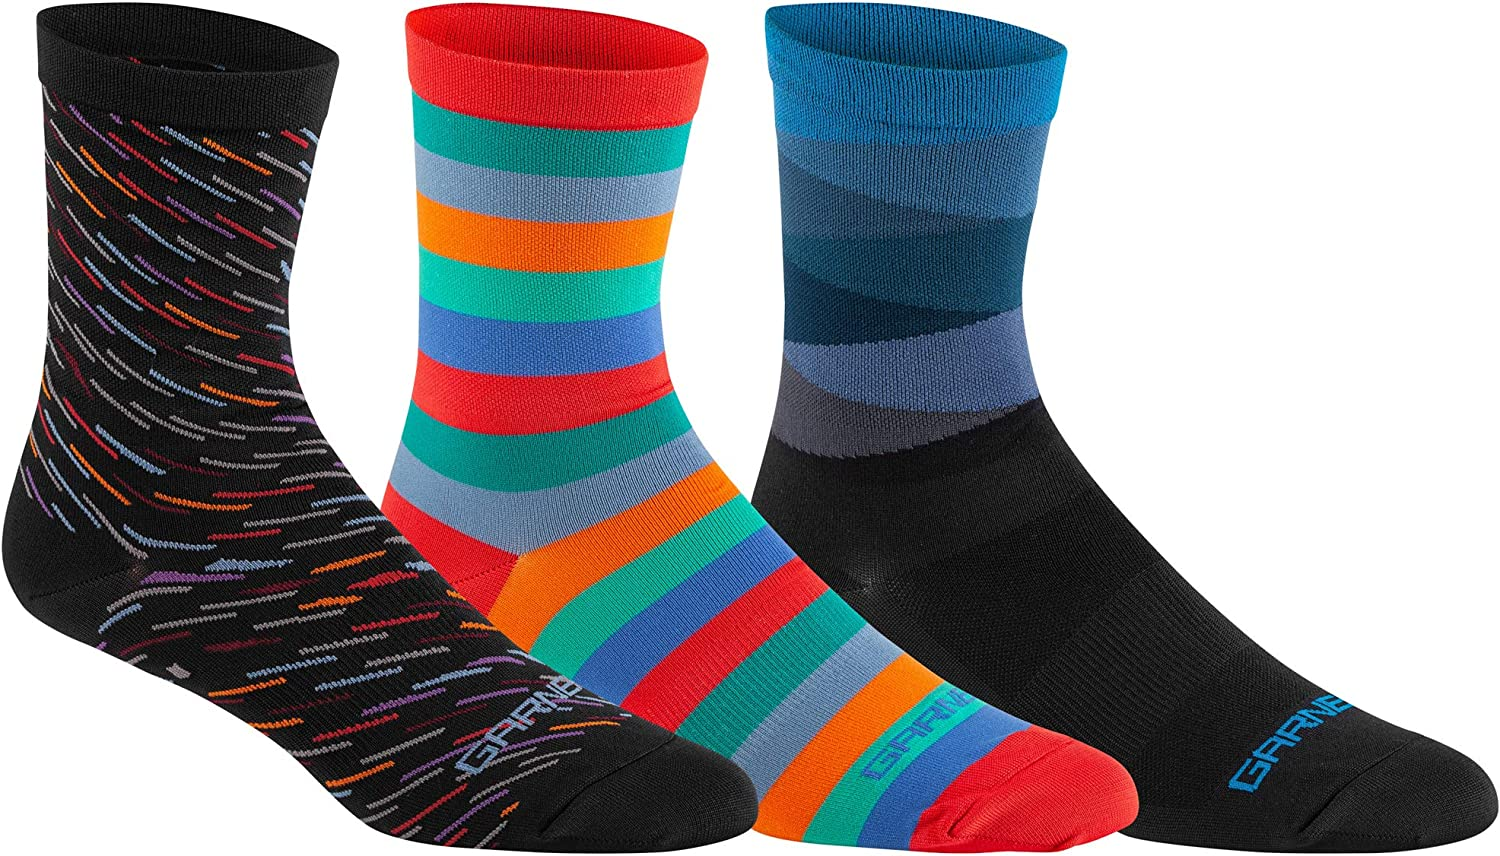 Louis Garneau, Conti Long Performance 3-Pack Cycling Socks for Men and Women